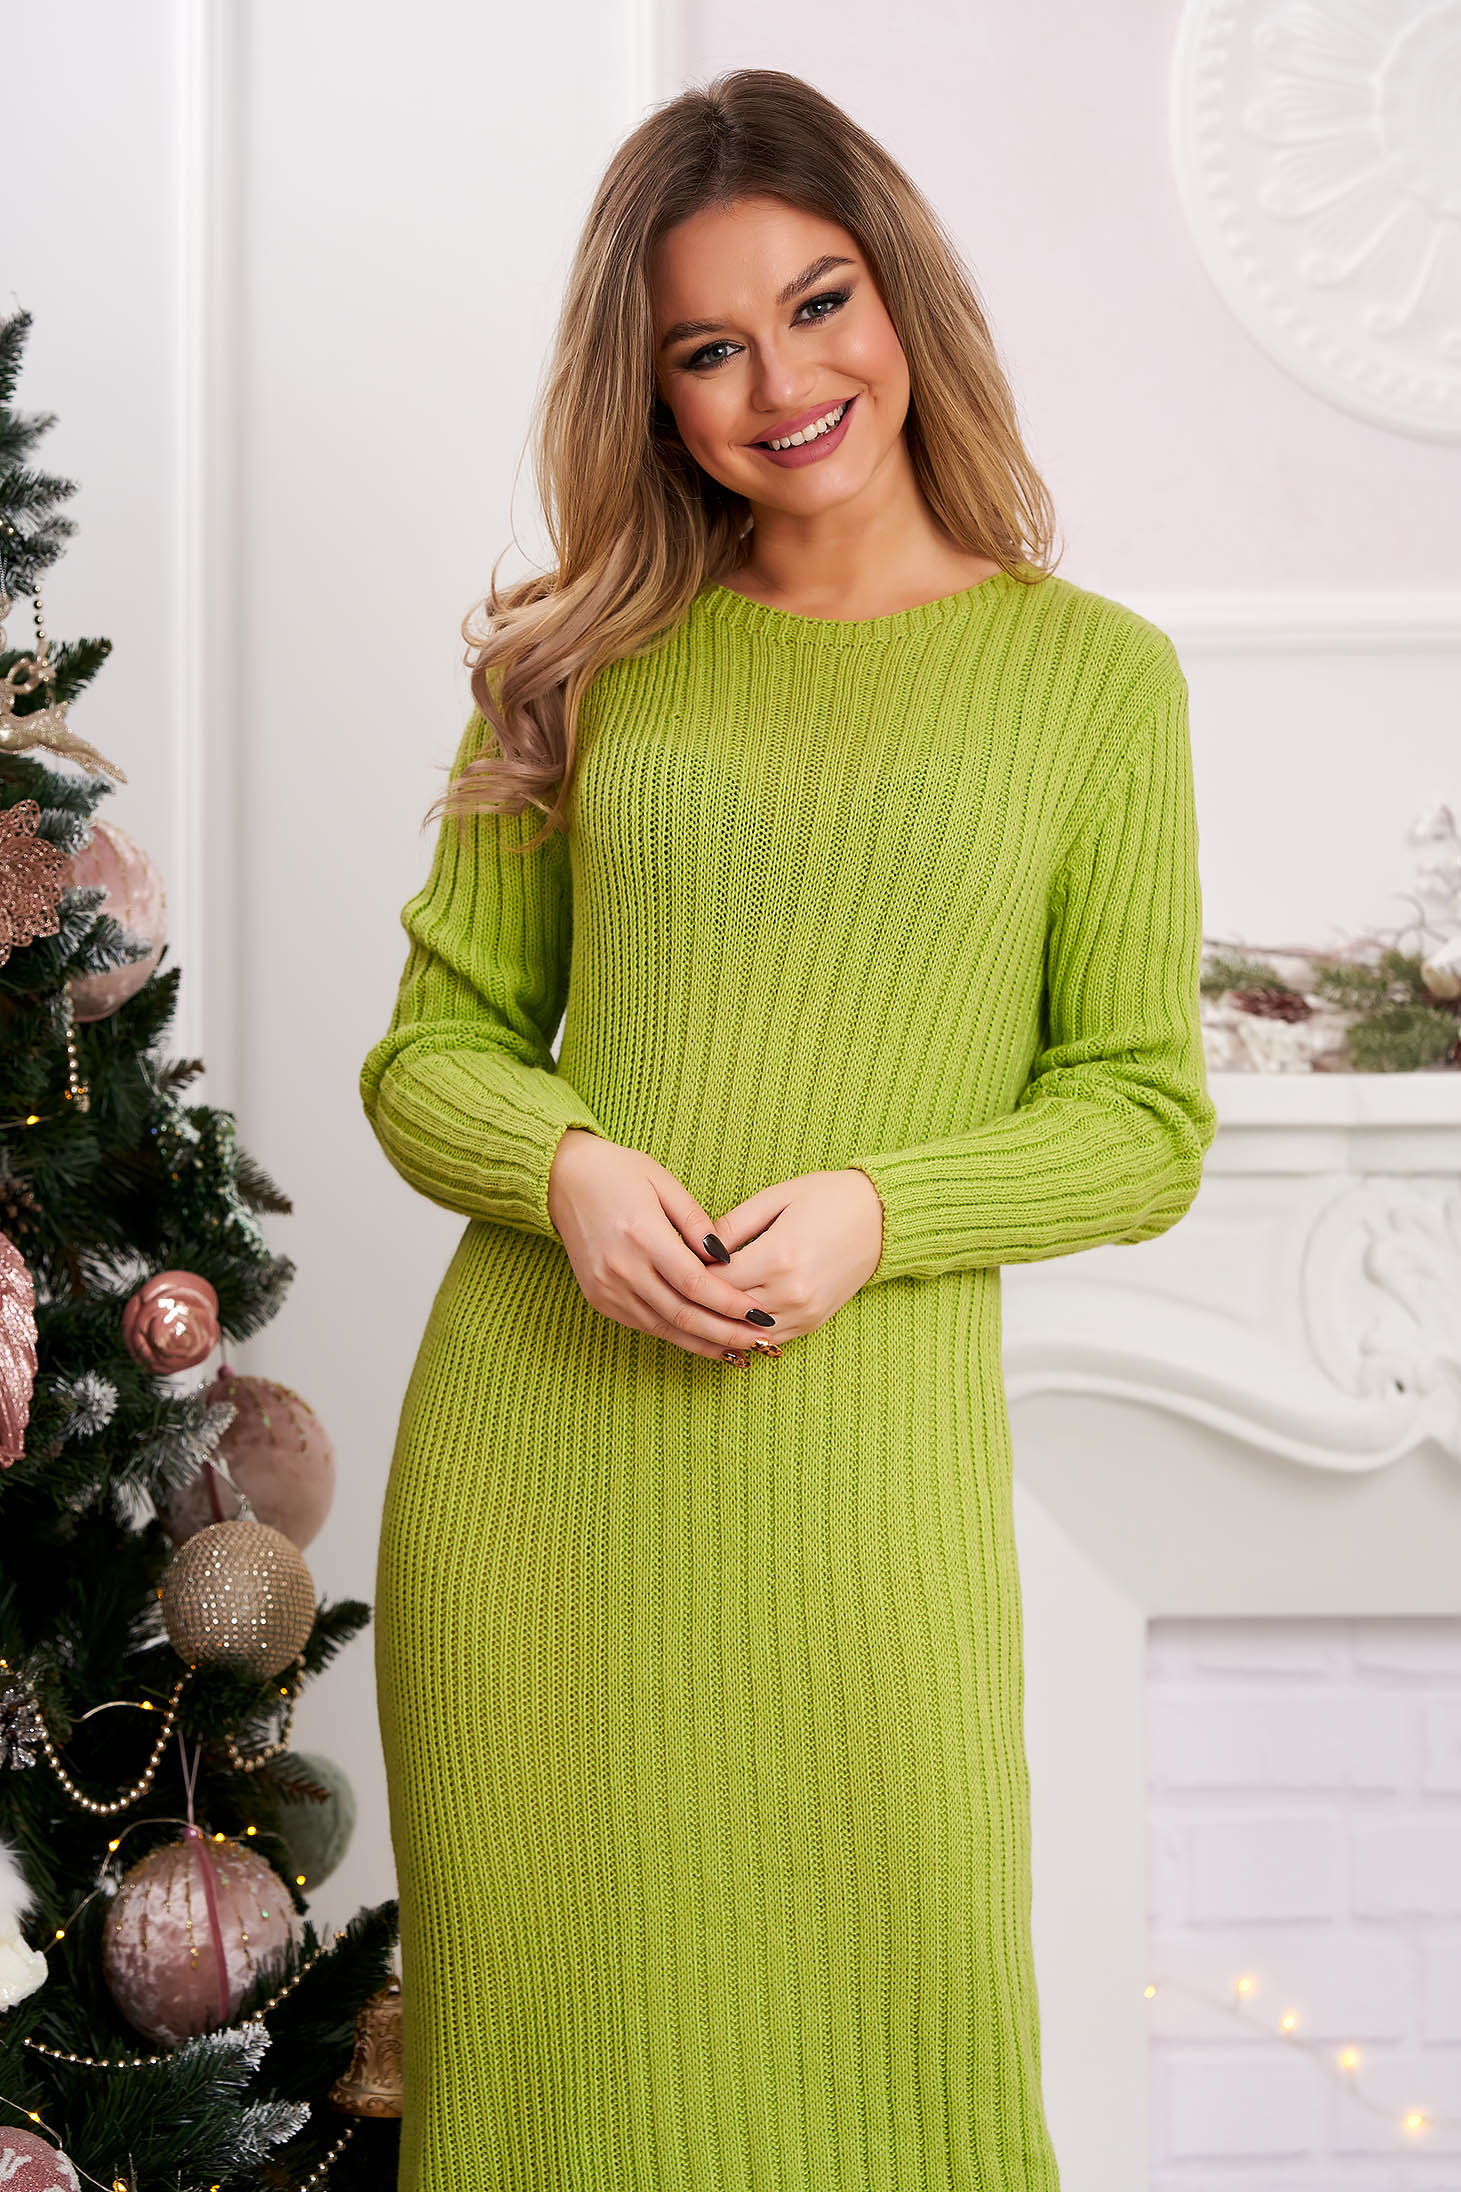 Lightgreen dress short cut from striped fabric knitted with rounded cleavage